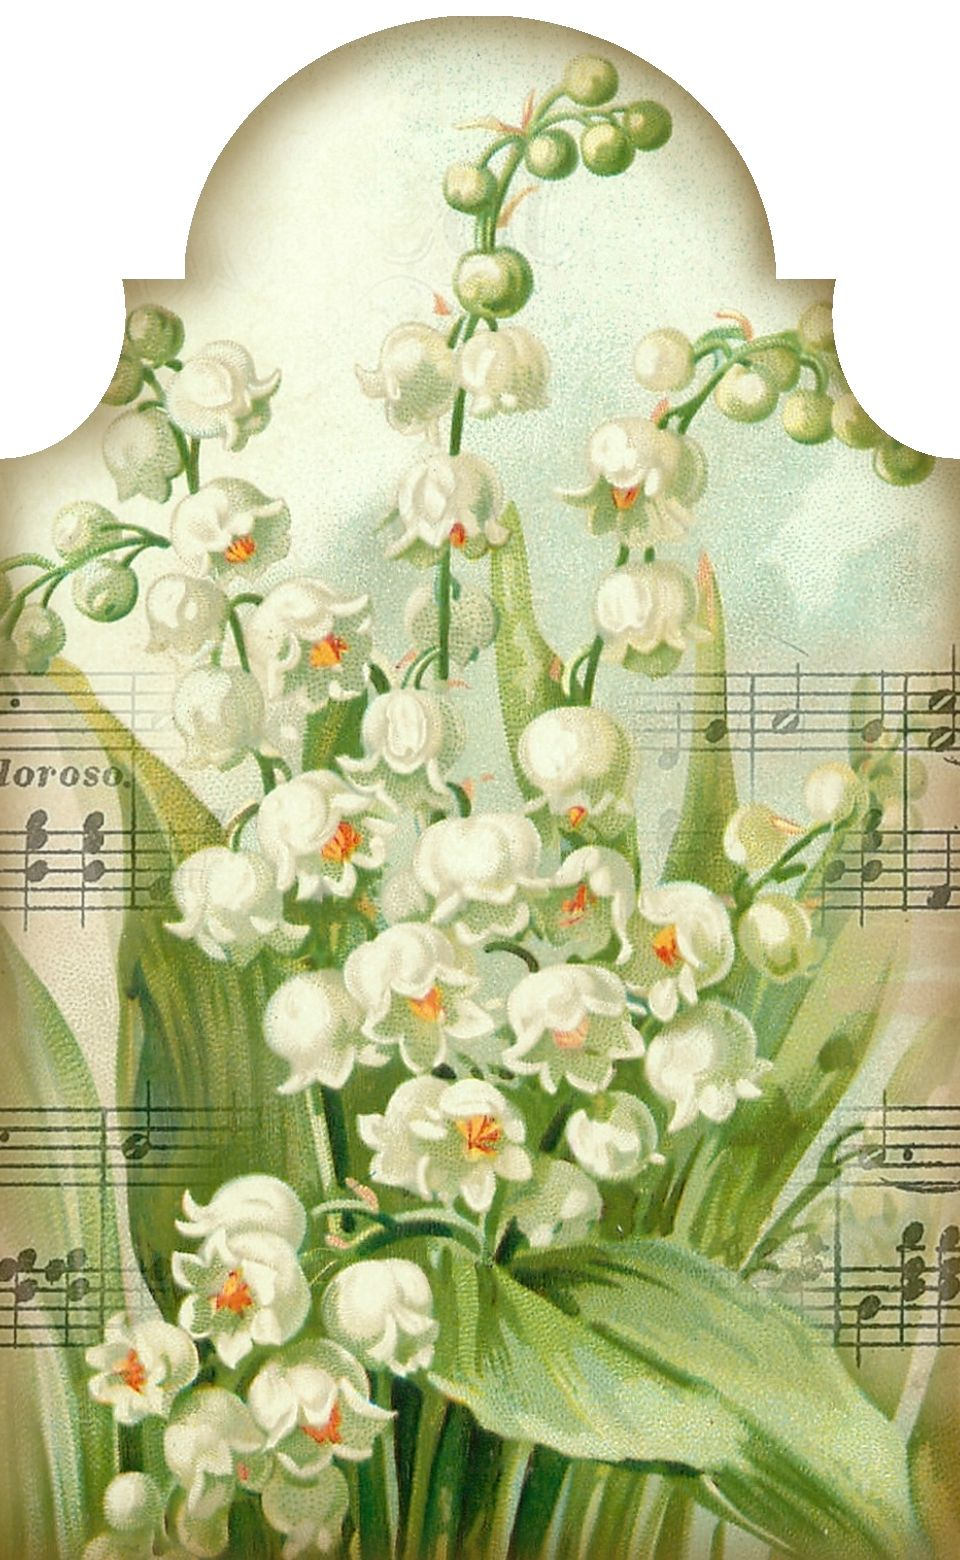 Sweetest Of The Flowers Lily Of The Valley And Music Tag Tag 32